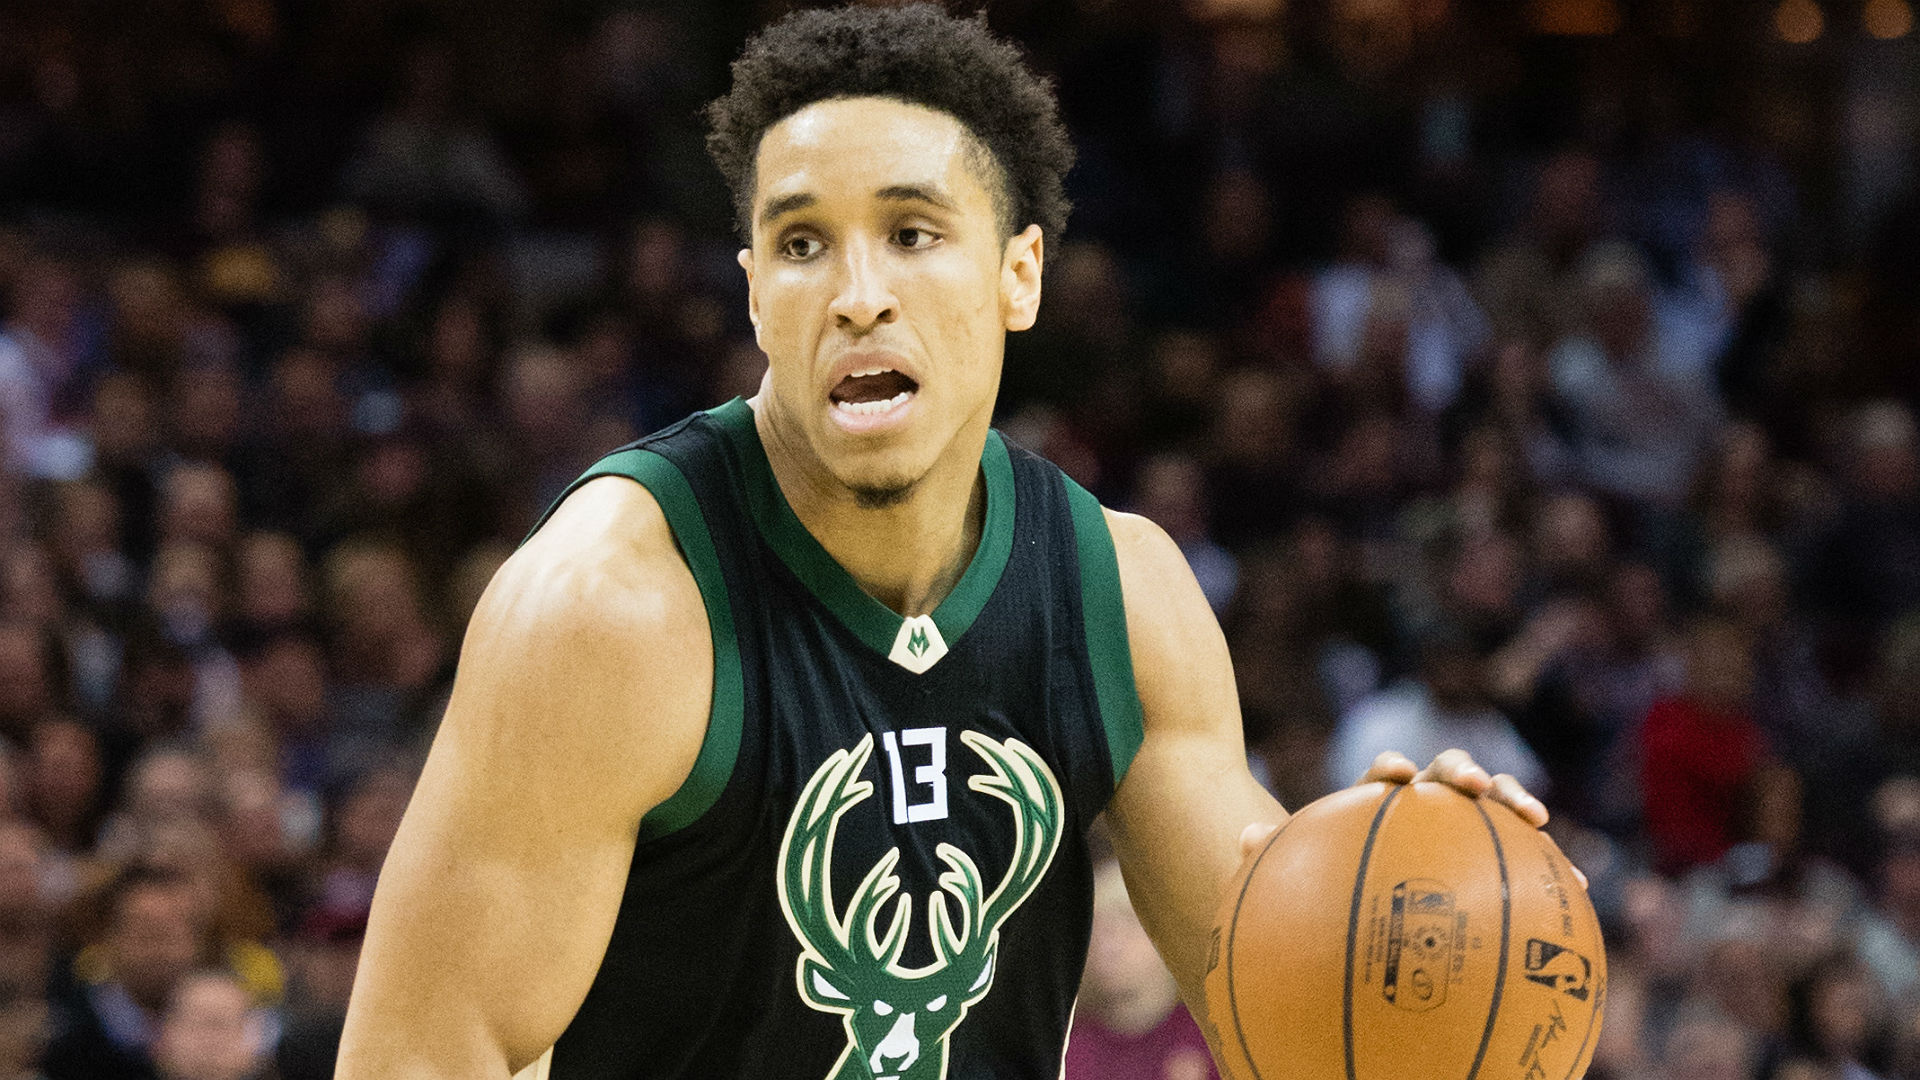 Malcolm Brogdon injury update: Bucks guard (foot) out at least first 2 games vs. Celtics